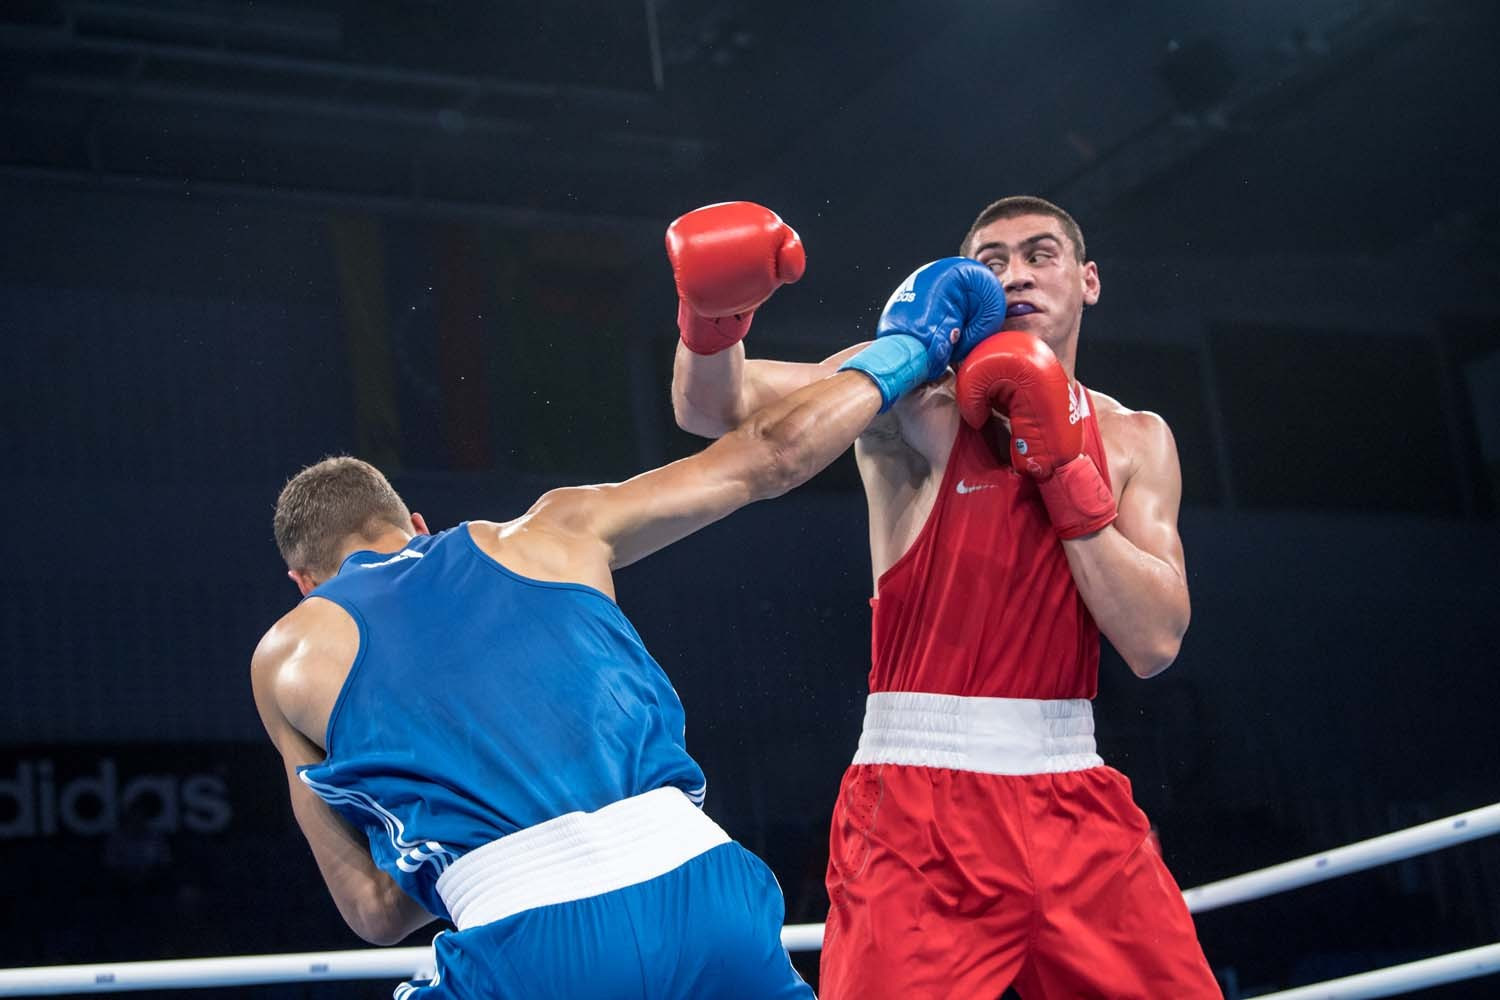 """World heavyweight champion Evgeny Tishchenko of Russia beat New Zealand's David Nyika, but his opponent questioned the decision after the fight, claiming he was the victim of a """"sick practical joke"""" ©AIBA"""